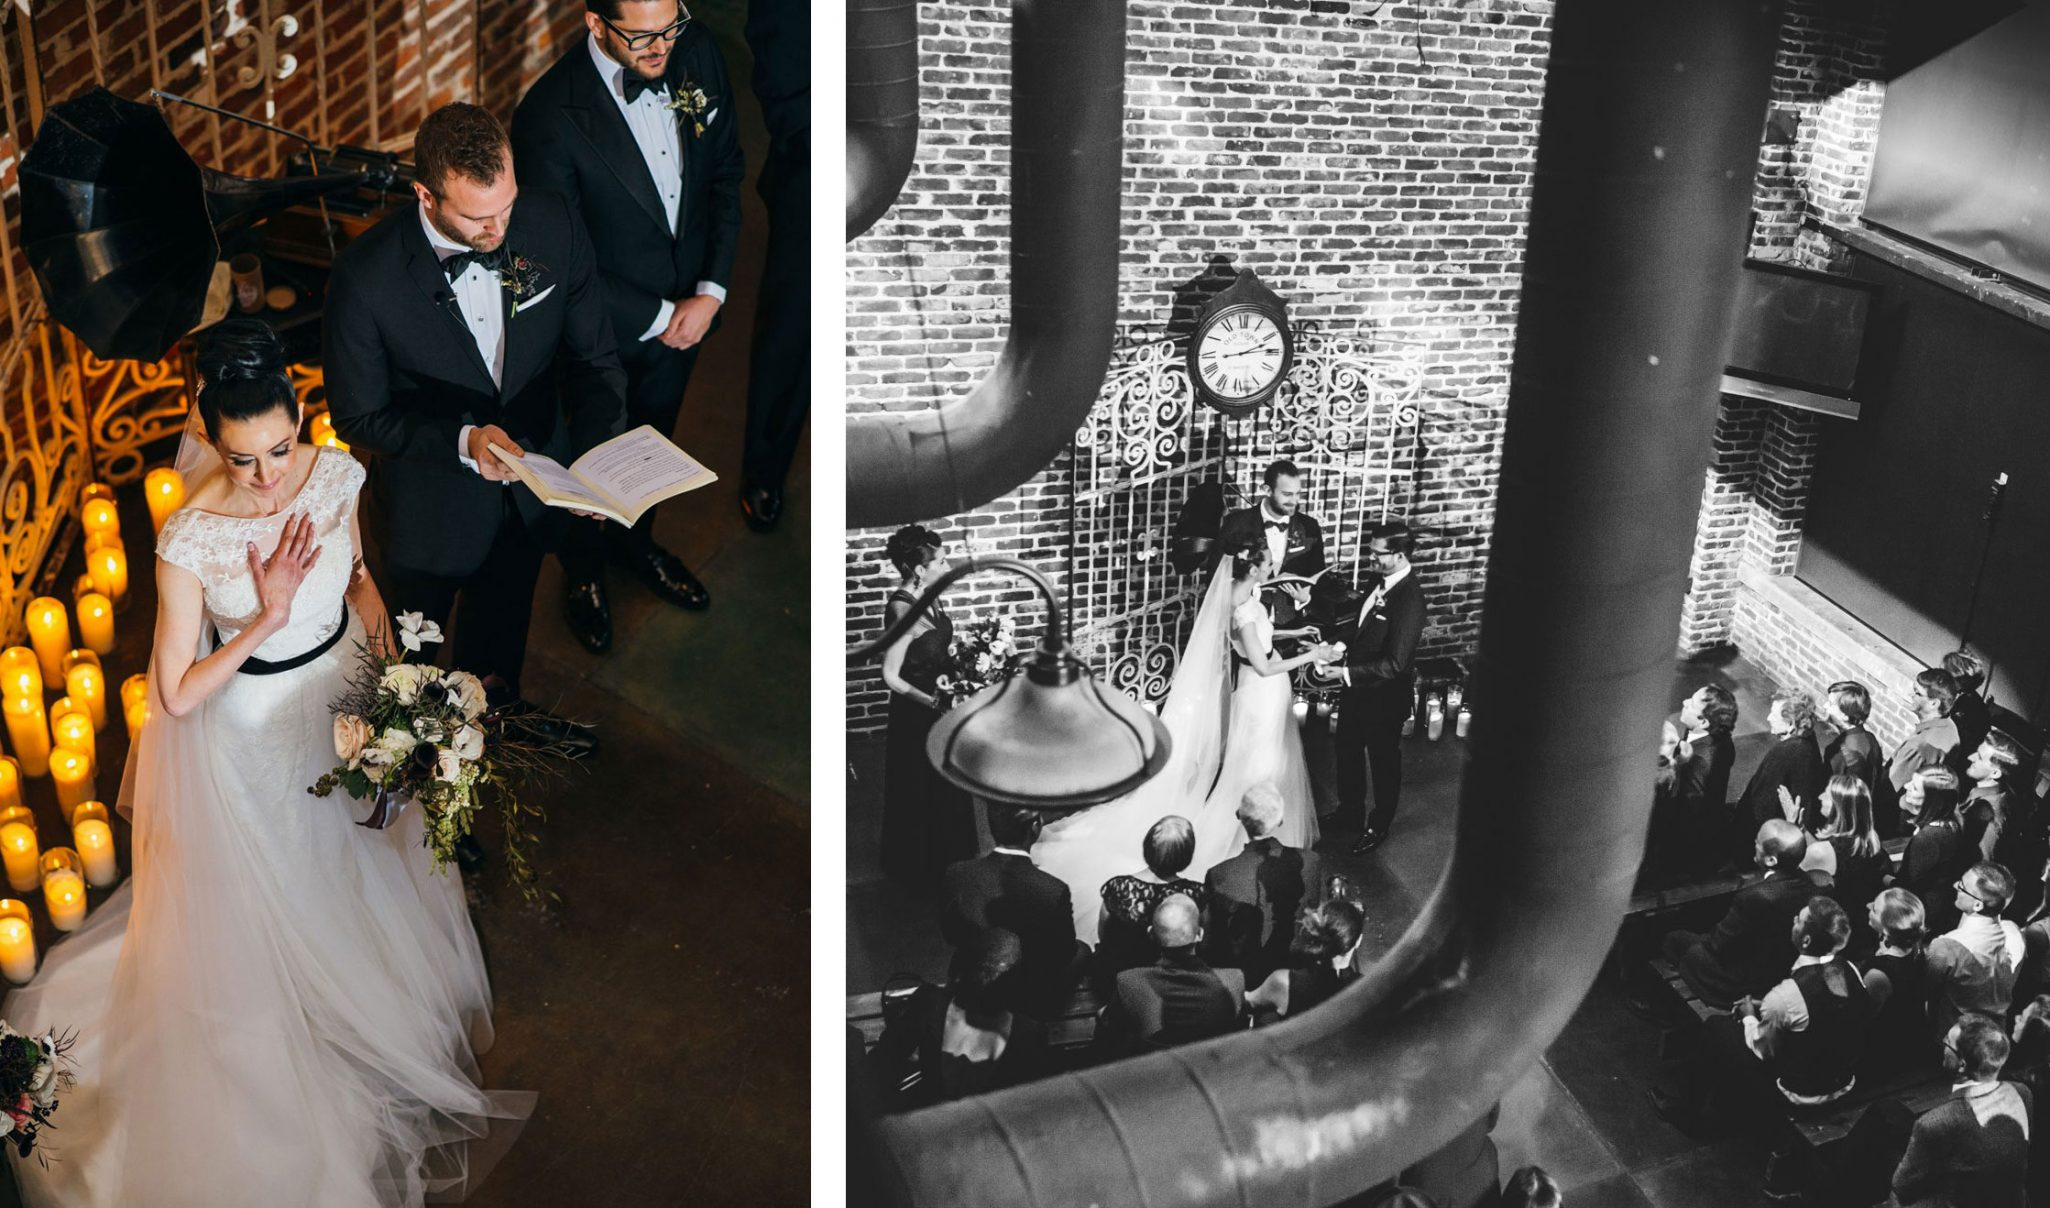 Exchange eulogies instead of vows as this couple did